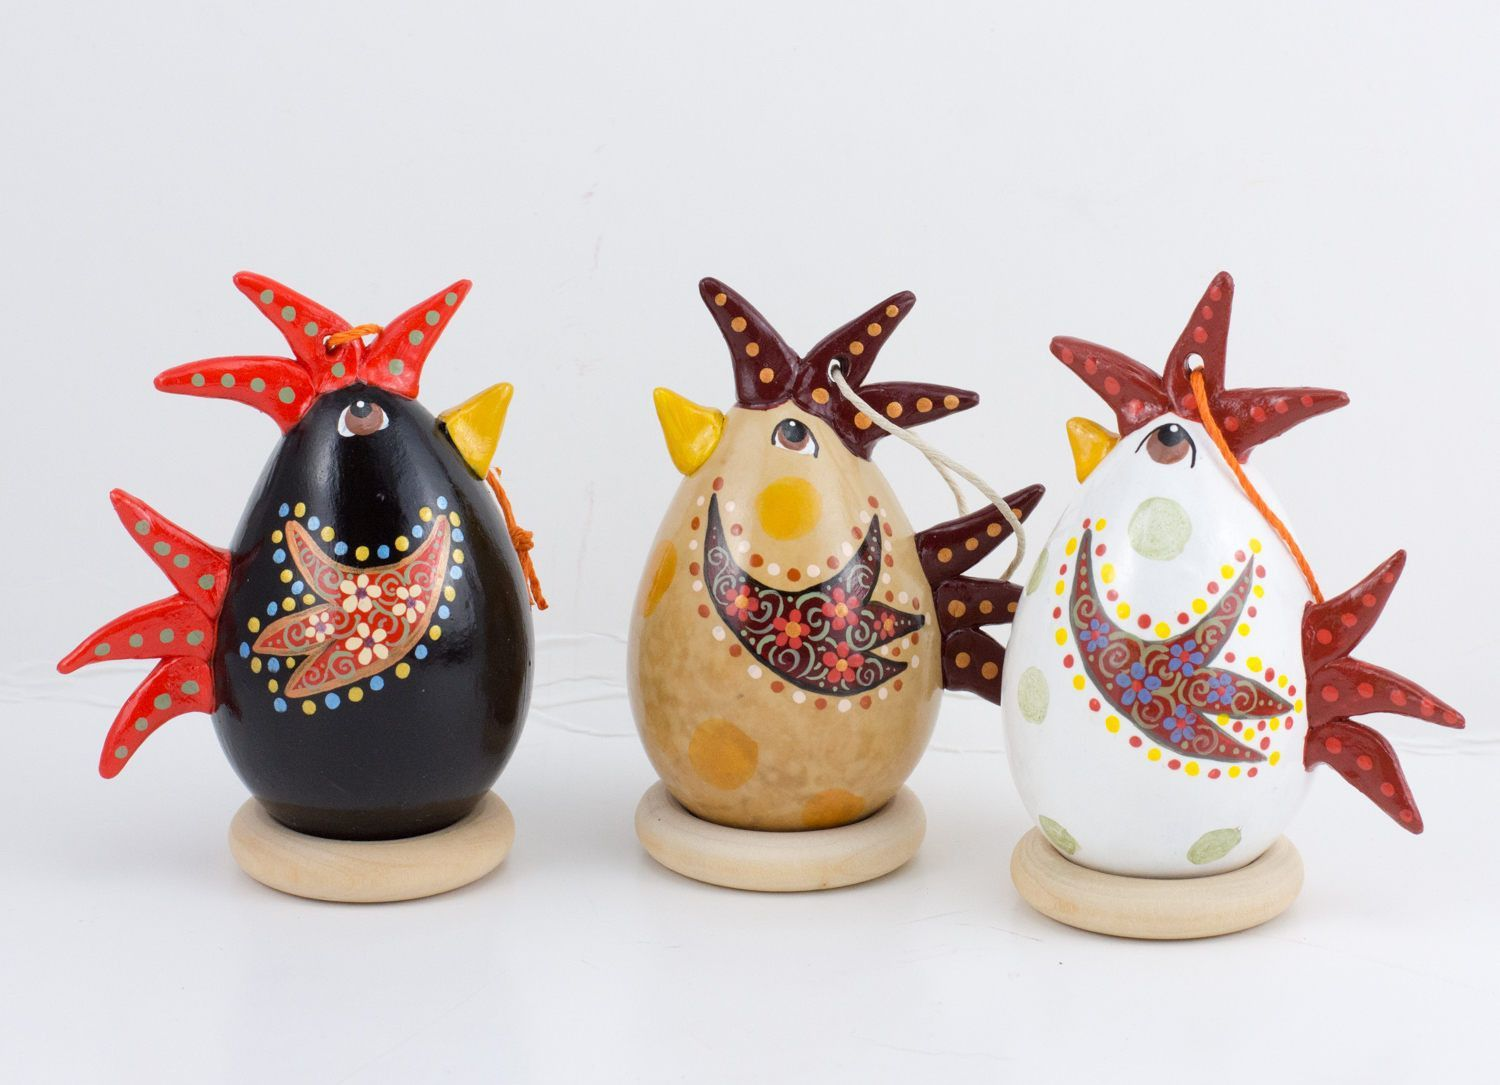 Chicken Ornament Set of 3 - Black Chicken, White Chicken, Tan ...